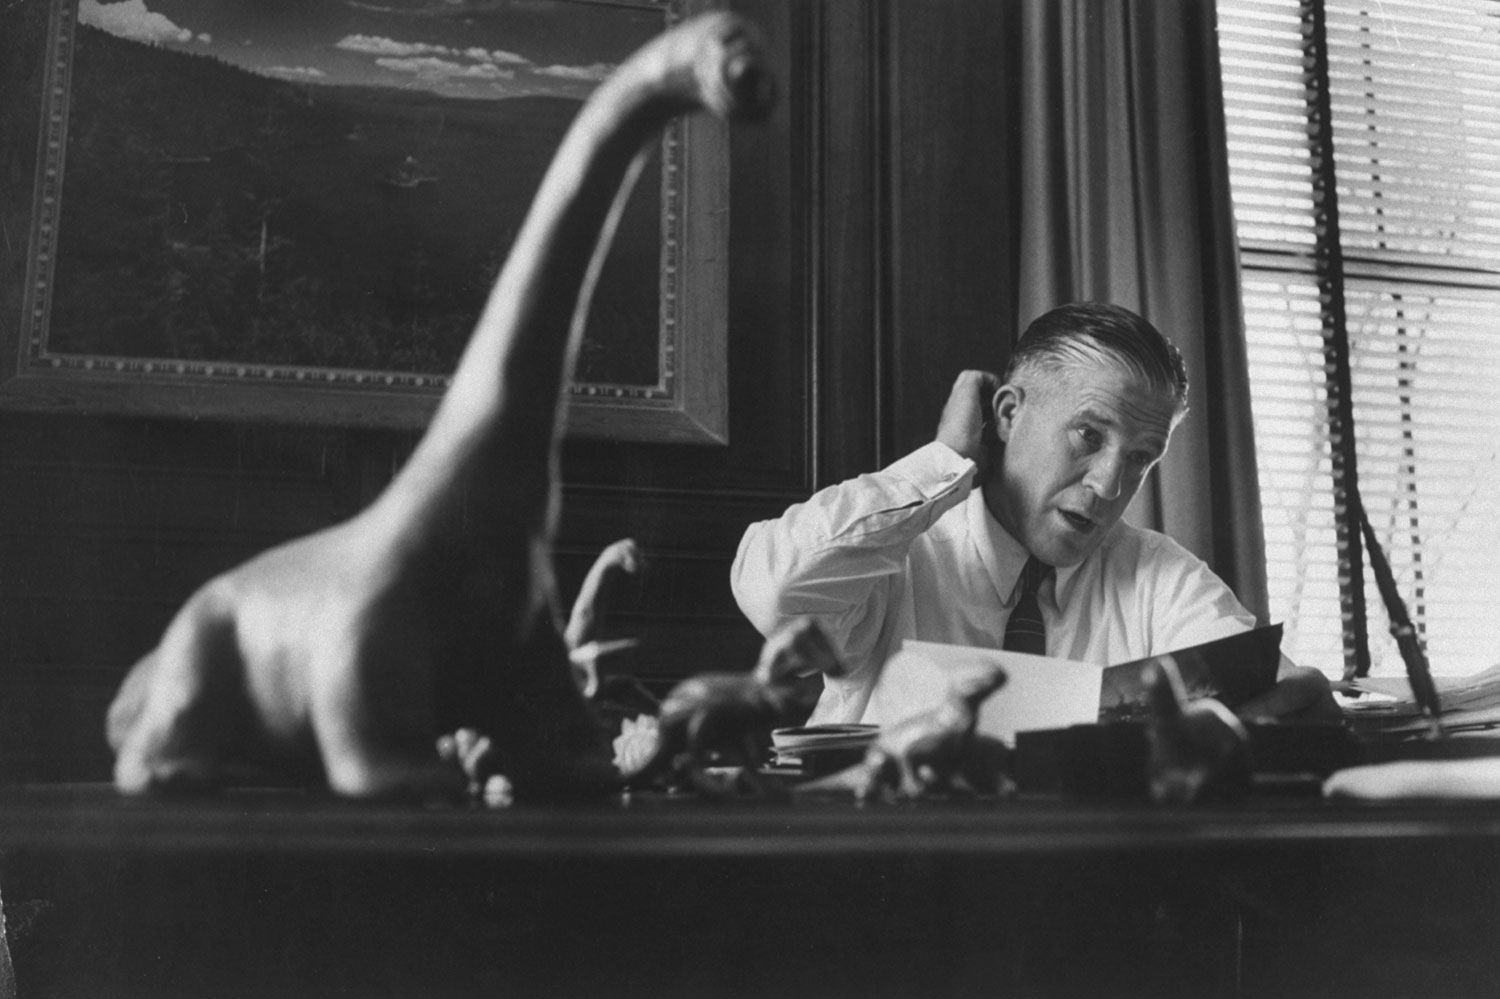 <b>Caption from LIFE.</b> On desk George Romney keeps prehistoric animals to remind him of favorite 'big-car' analogy. 'Some dinosaurs had a 70-foot wheelbase and huge fuel consumption. The principal factor in their extinction was the fact that they got so big they were unable to live.'